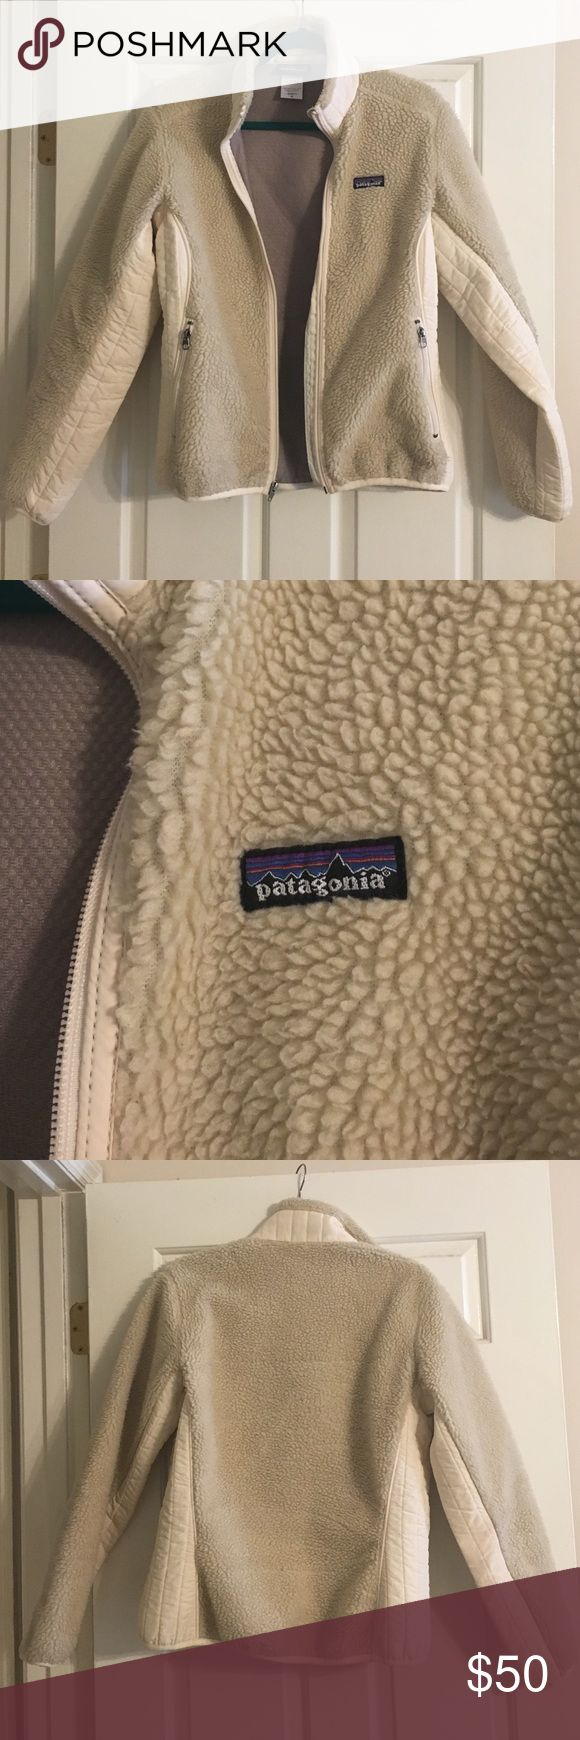 Patagonia Cream Synchilla Full Zip Jacket Patagonia women's medium full zip jacket. A little wear around elbows (see photo).  Overall good condition, just too small for me now! Patagonia Jackets & Coats